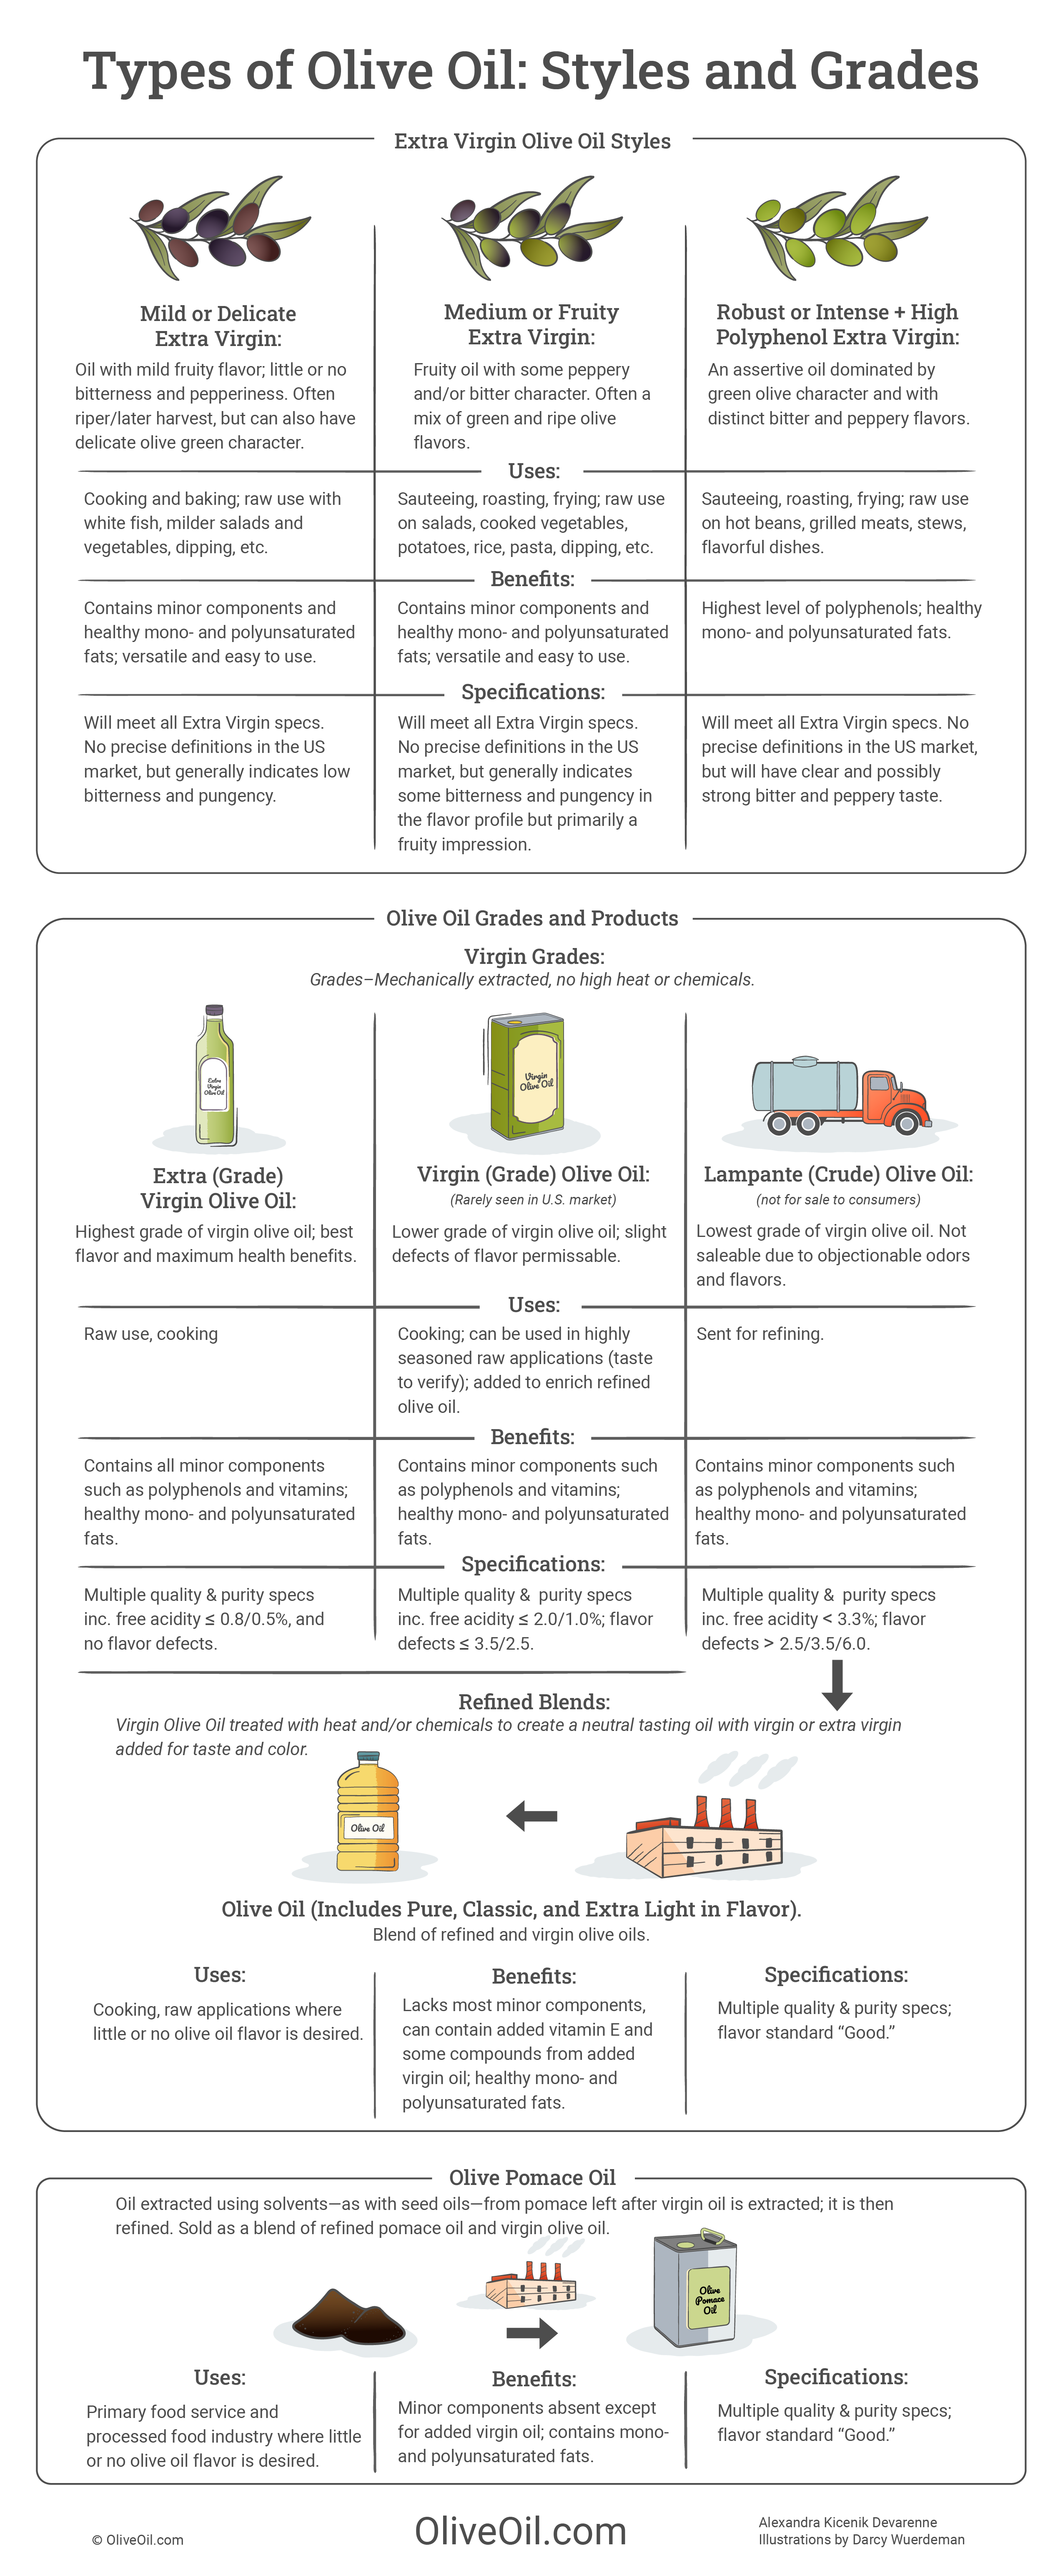 Types of Olive Oil Infographic showing olive oil grades and extra virgin olive oil styles